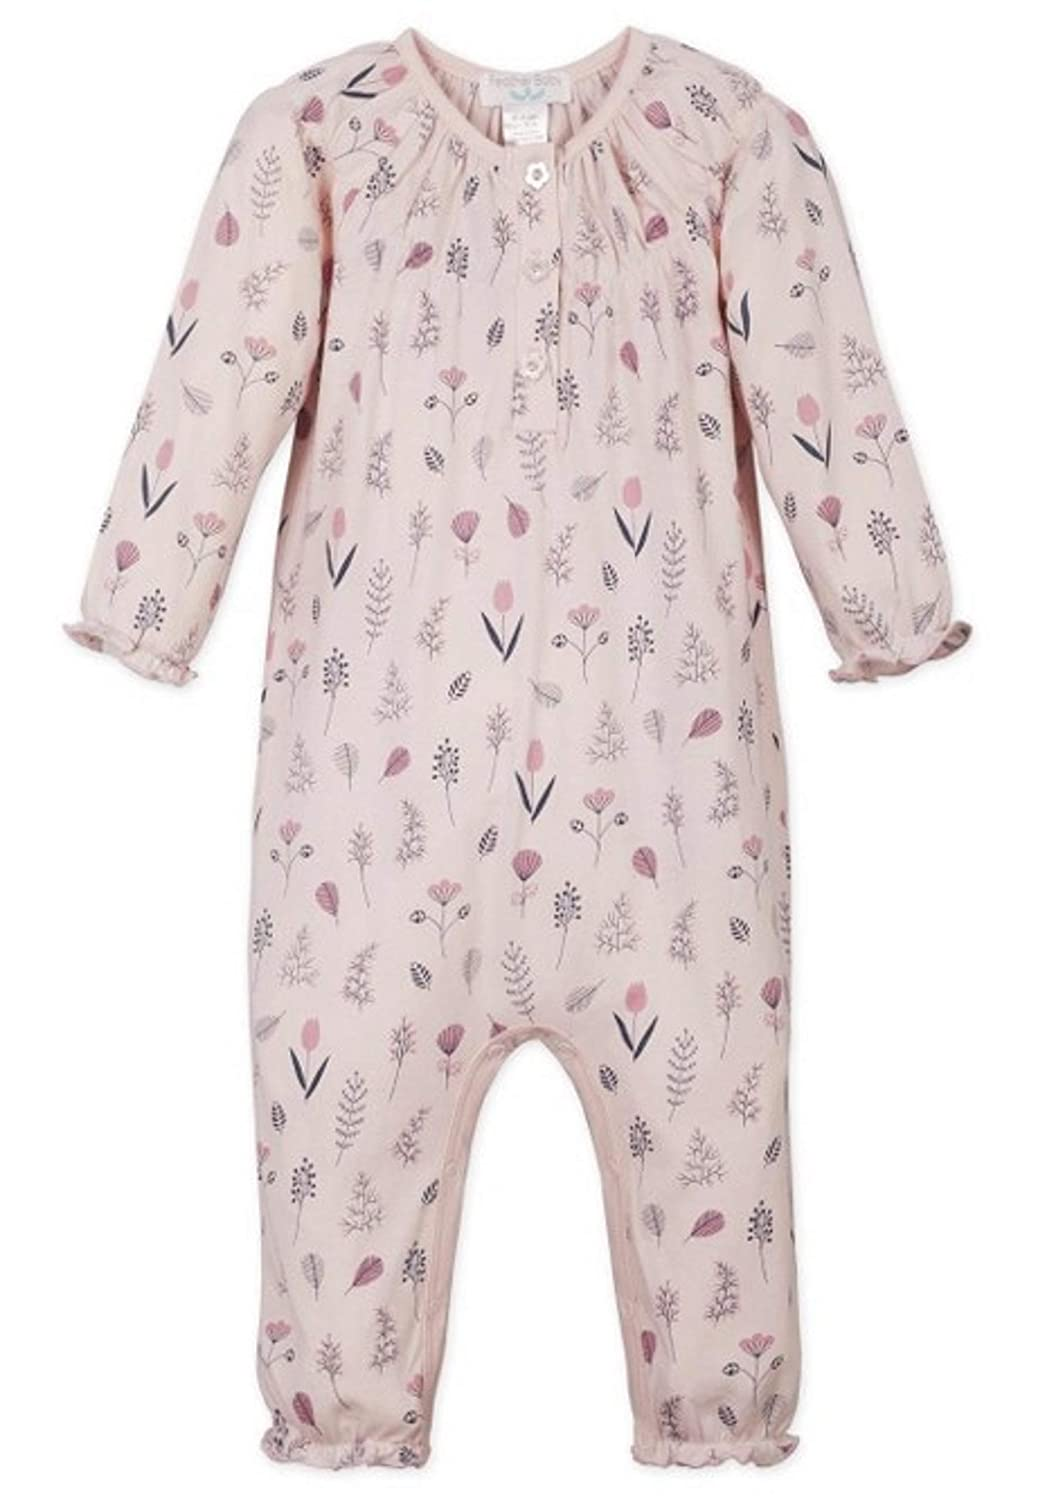 Feather Baby Girls Clothes Pima Cotton Long Sleeve Ruched Jumpsuit One Piece Romper 556J